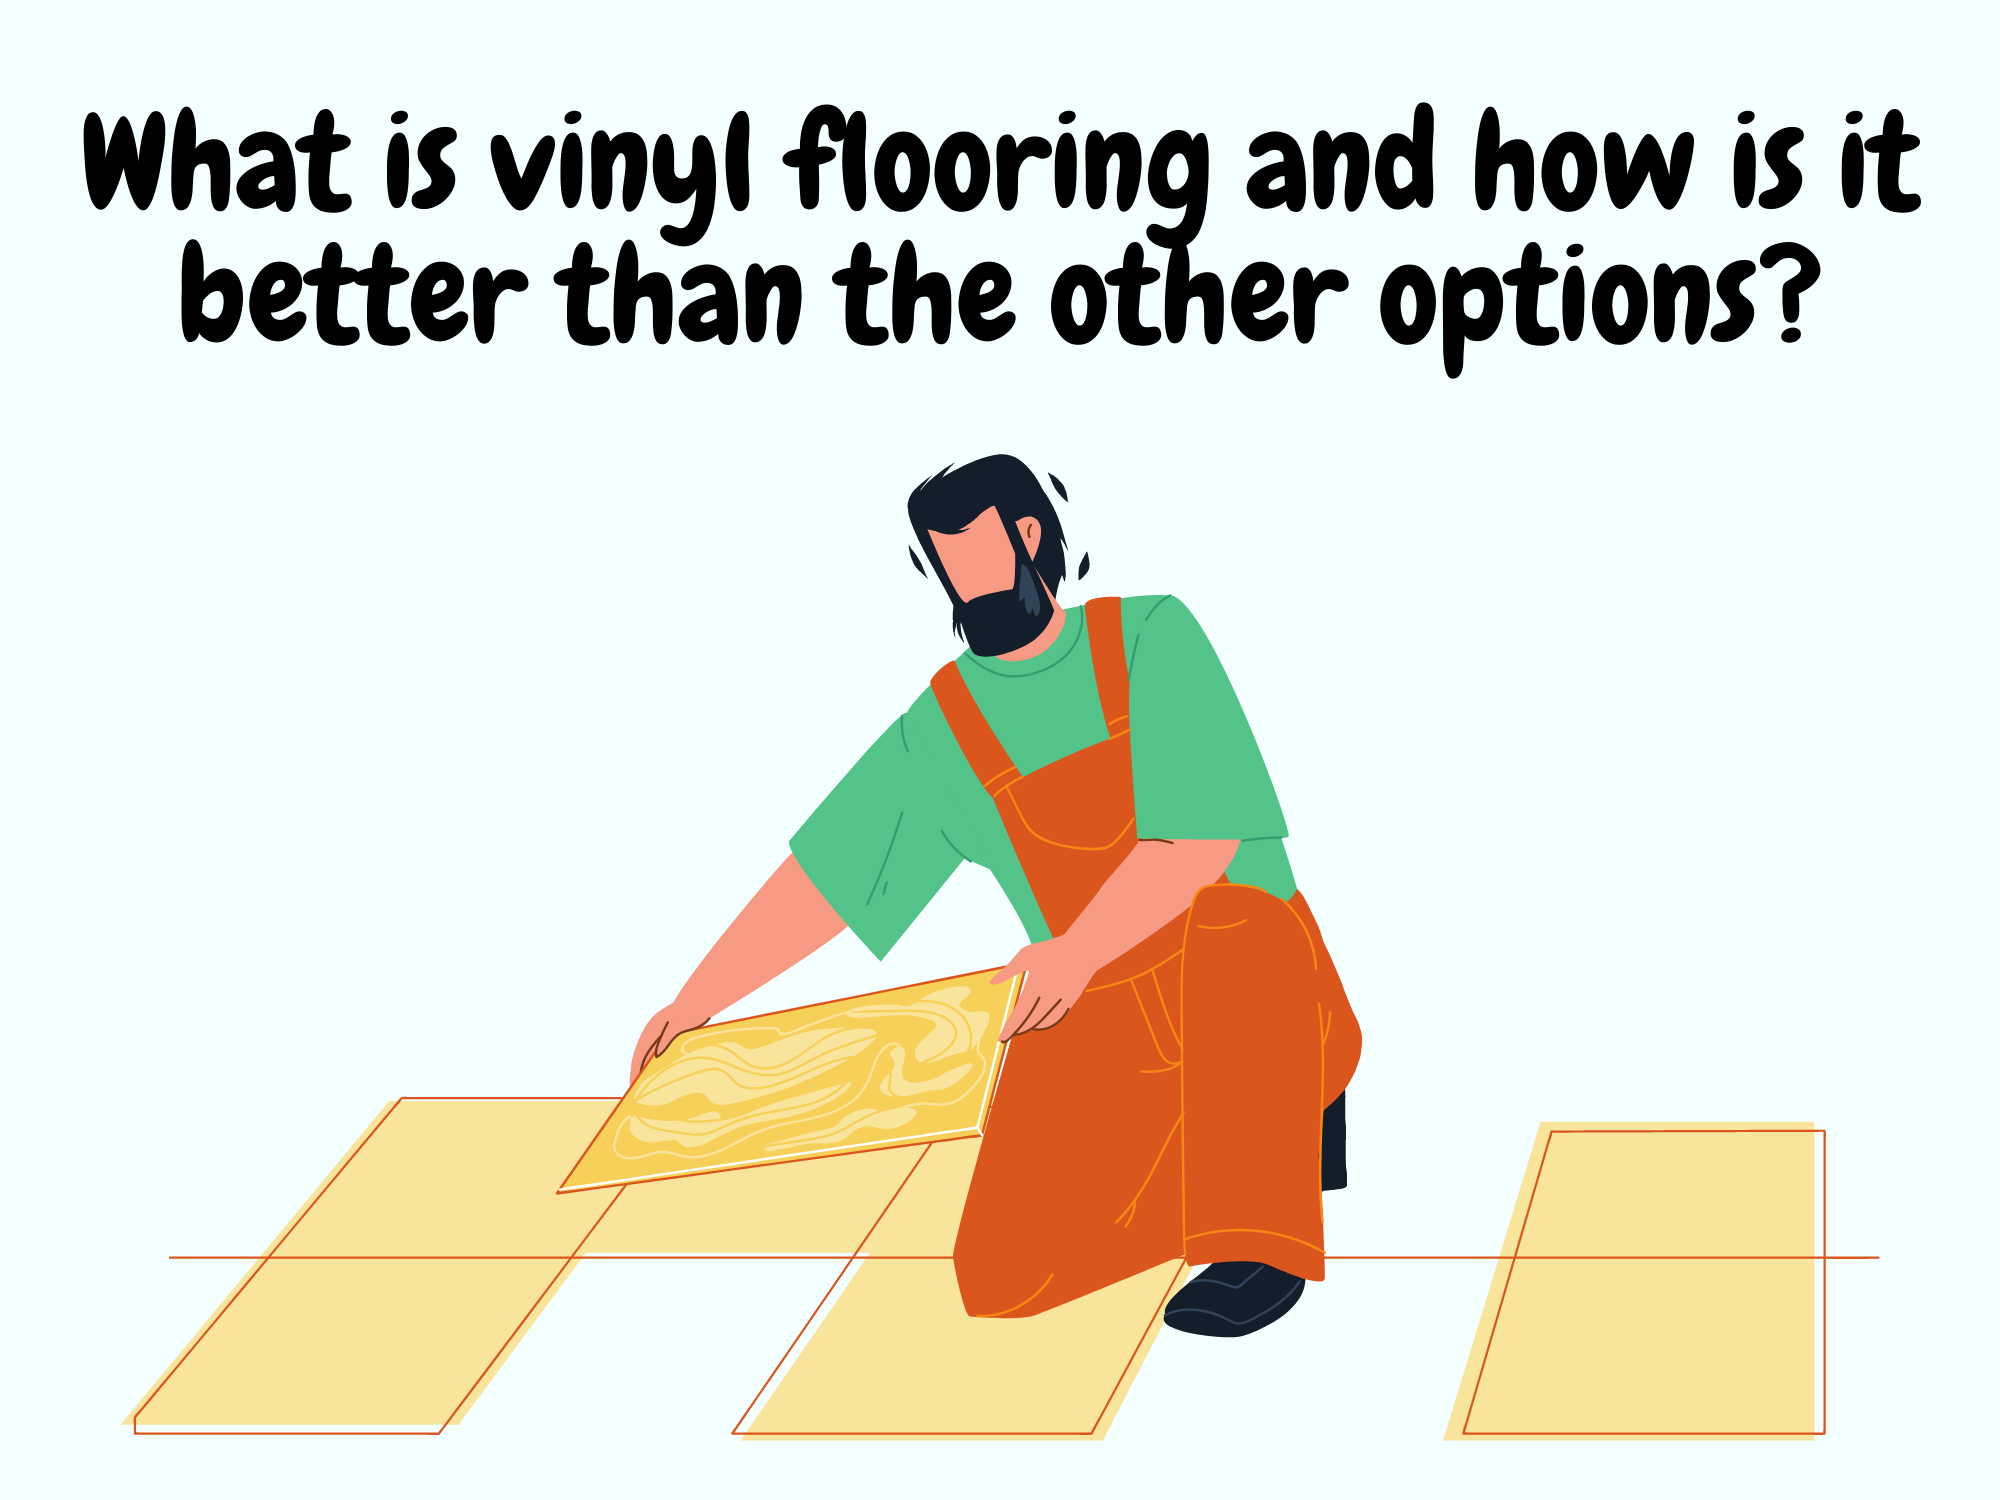 What-is-vinyl-flooring-and-how-is-it-better-than-the-other-options